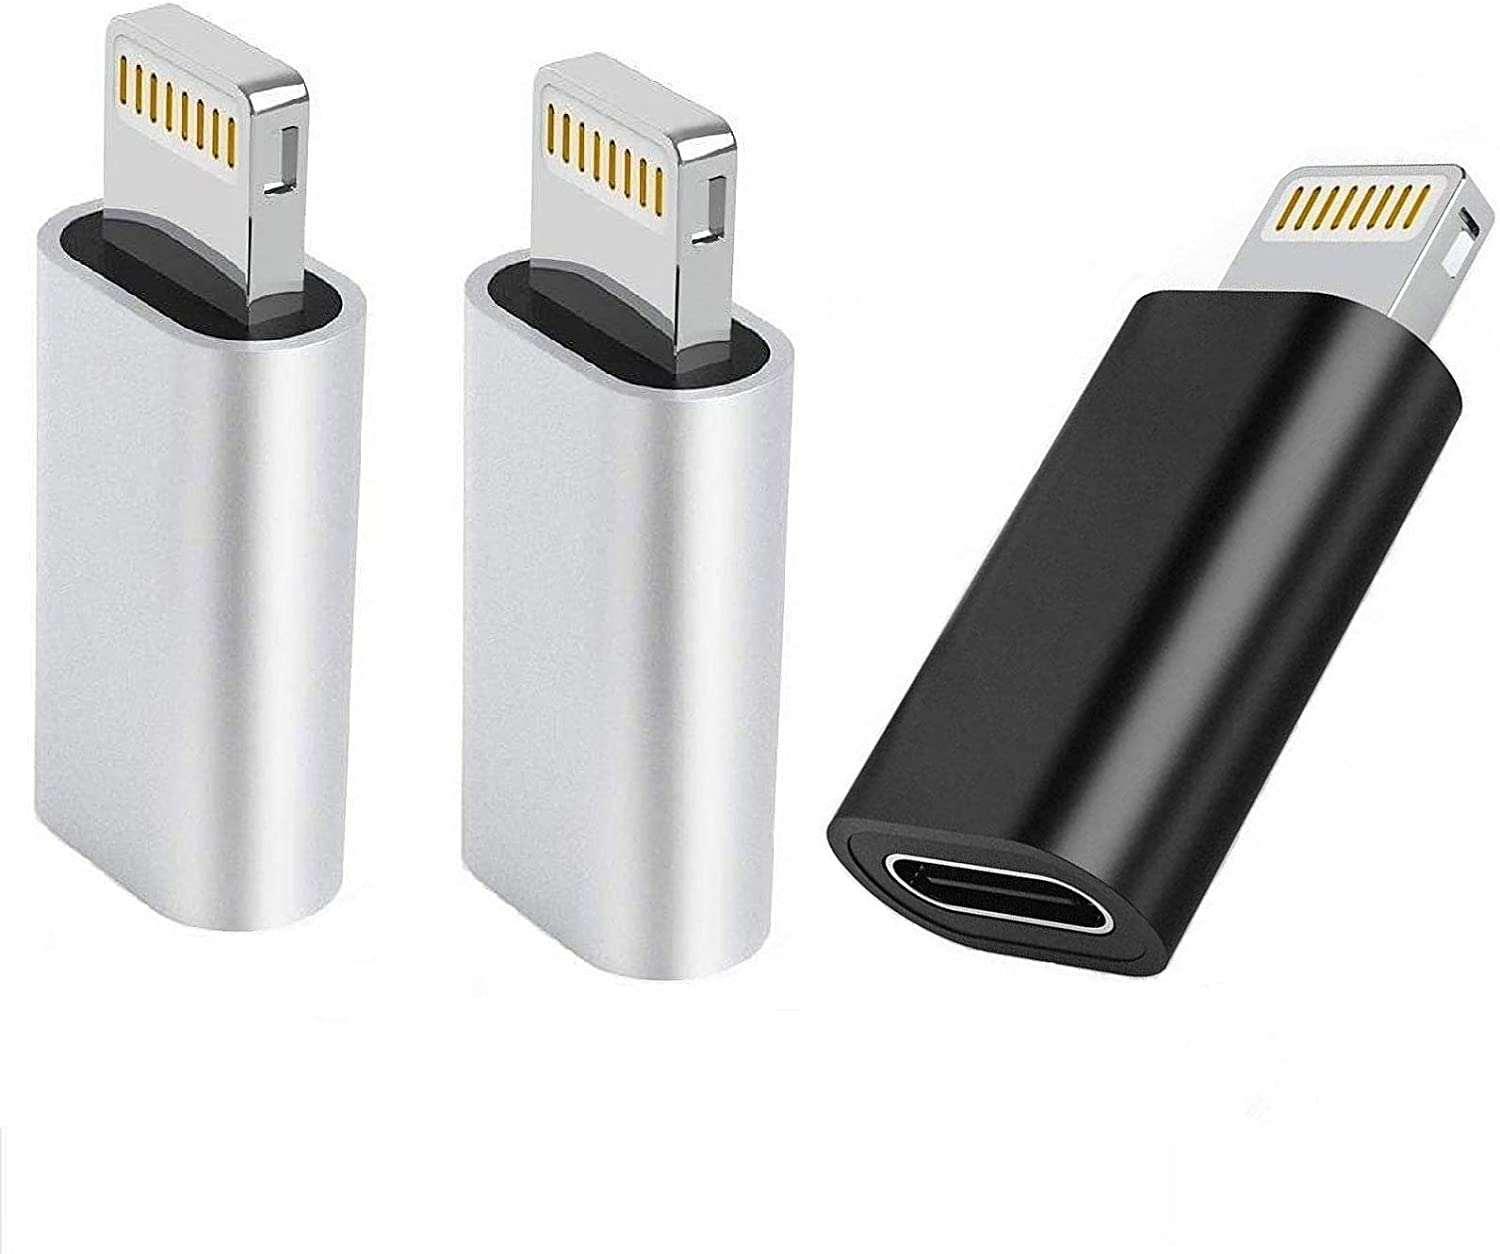 [Apple MFi Certified] USB C to Lightning Adapter for iPhone, 3 Pack Type C Female to Lightning Male Adapter Charger Converter Compatible with iPhone 12/11/XR/XS/X/8 7, Support Charging & Data Sync